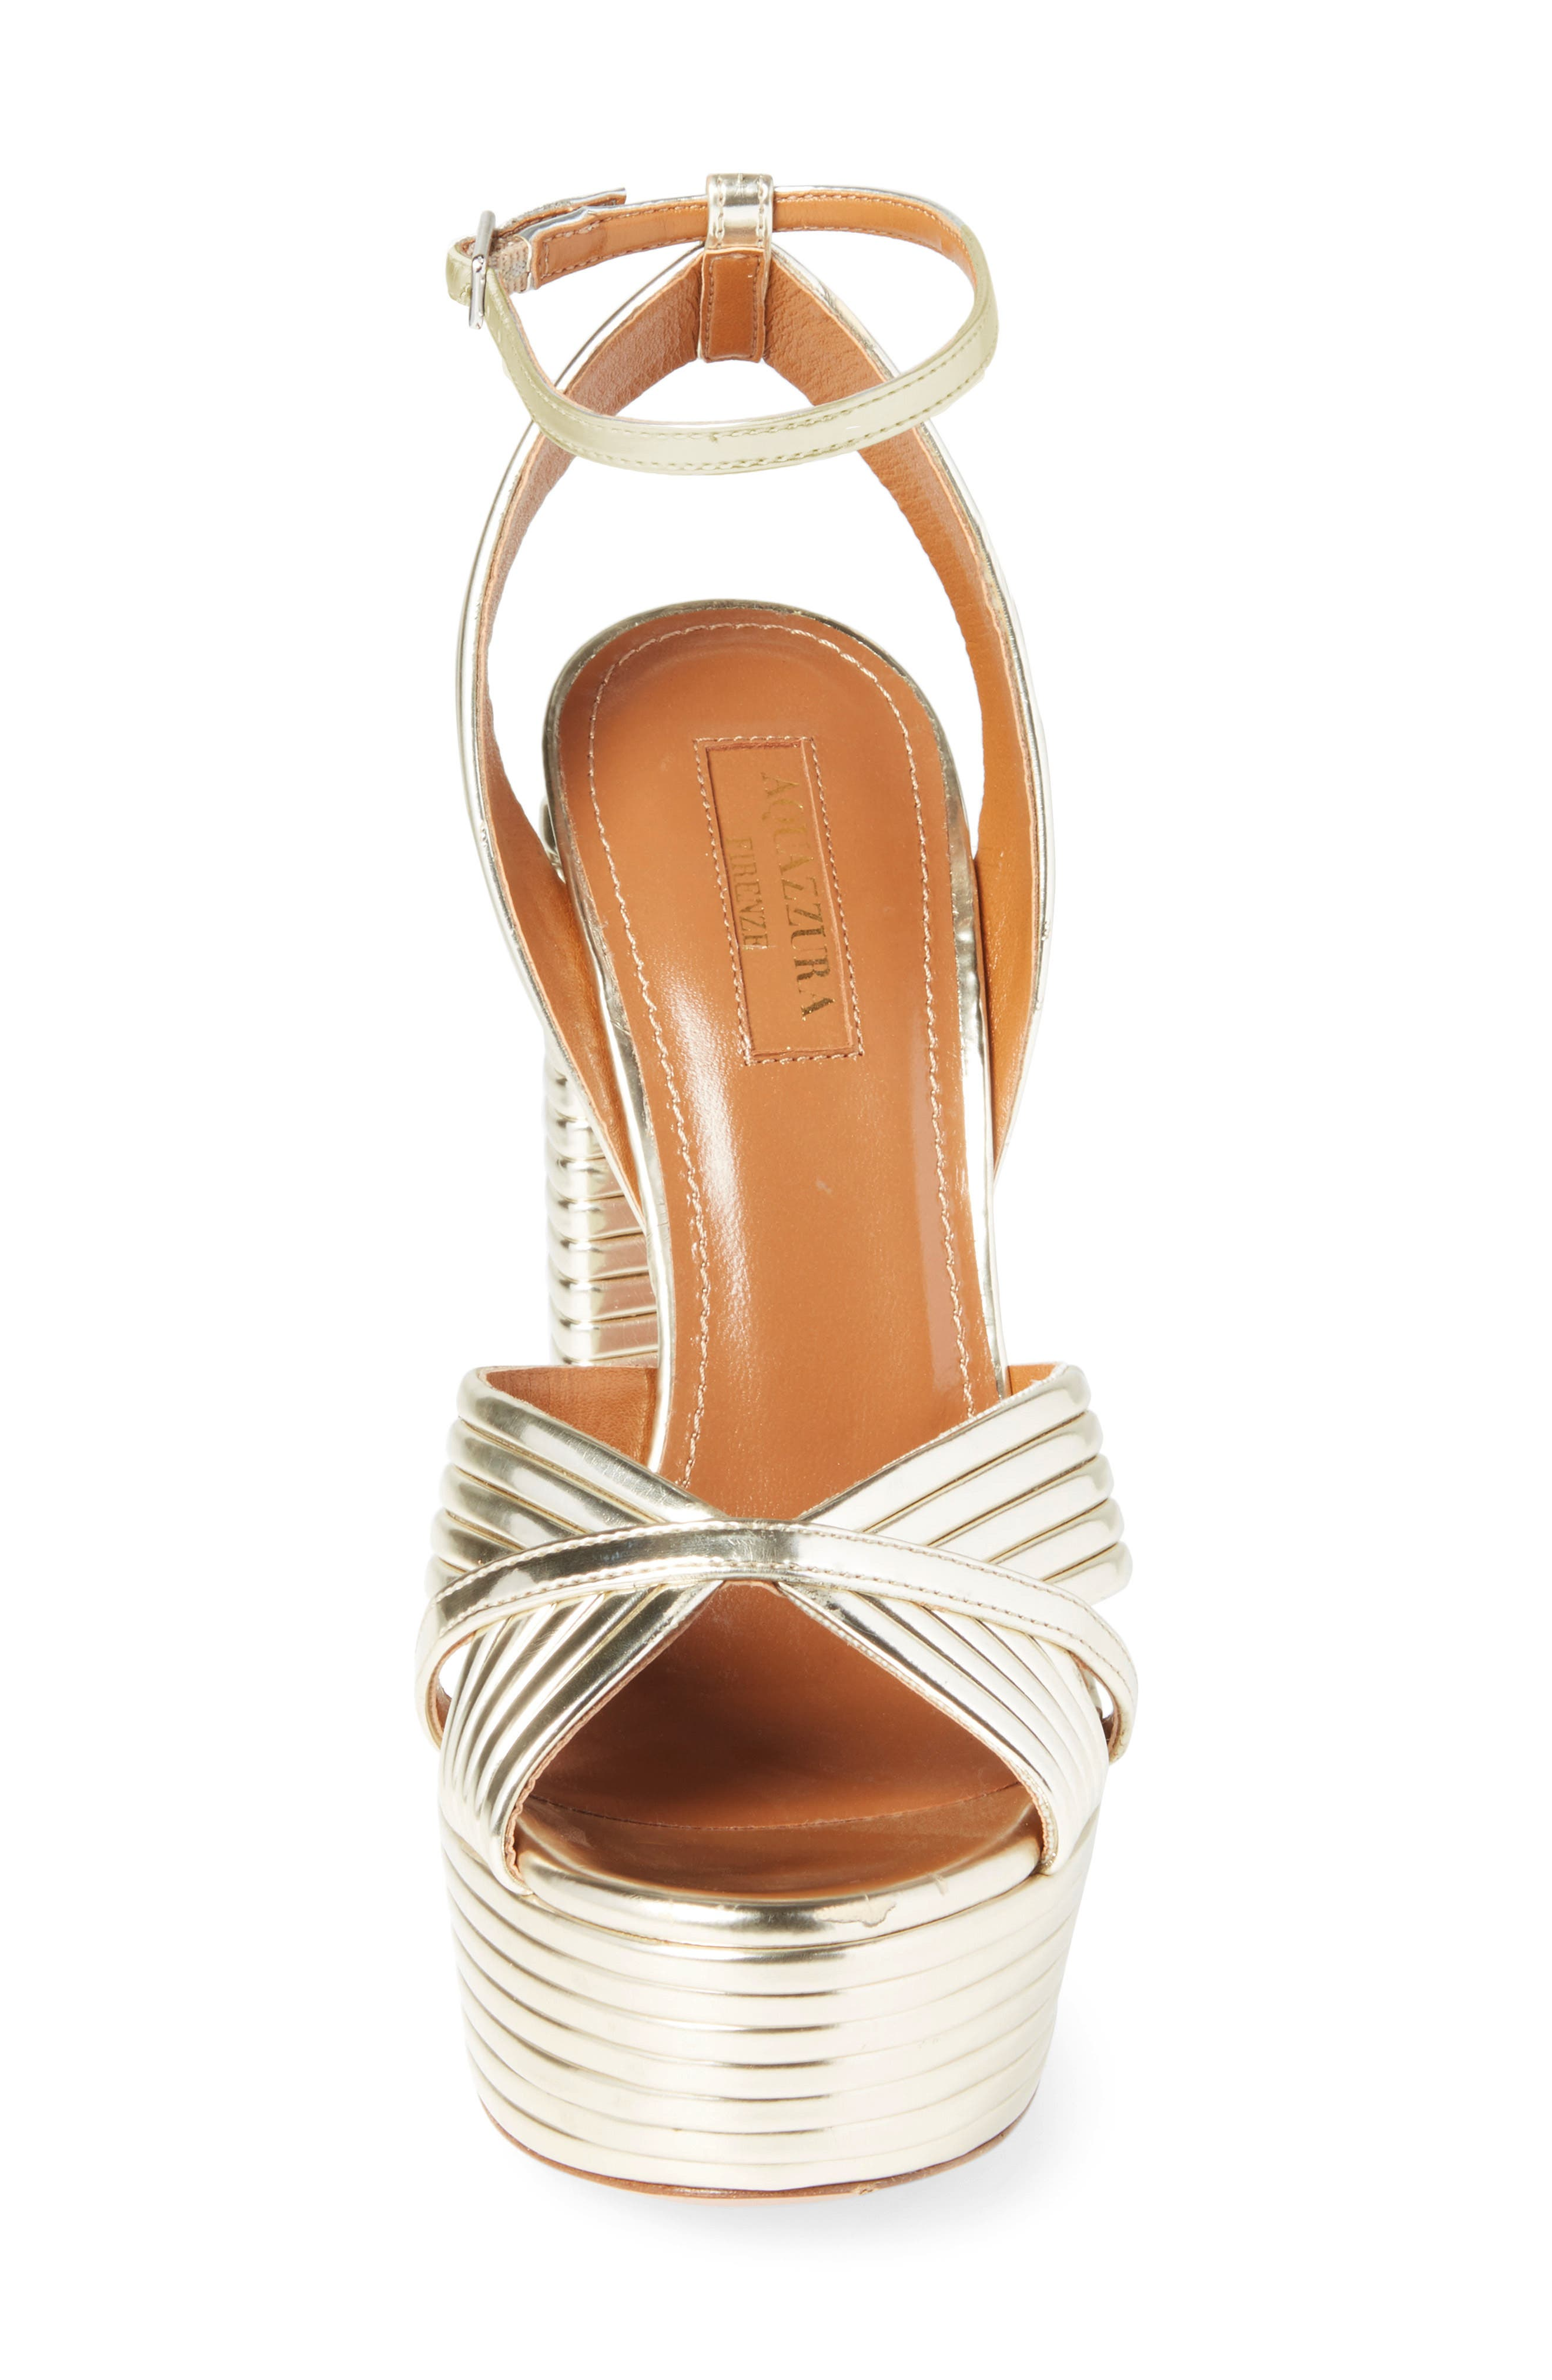 Sundance Platform Sandal,                             Alternate thumbnail 4, color,                             Light Gold